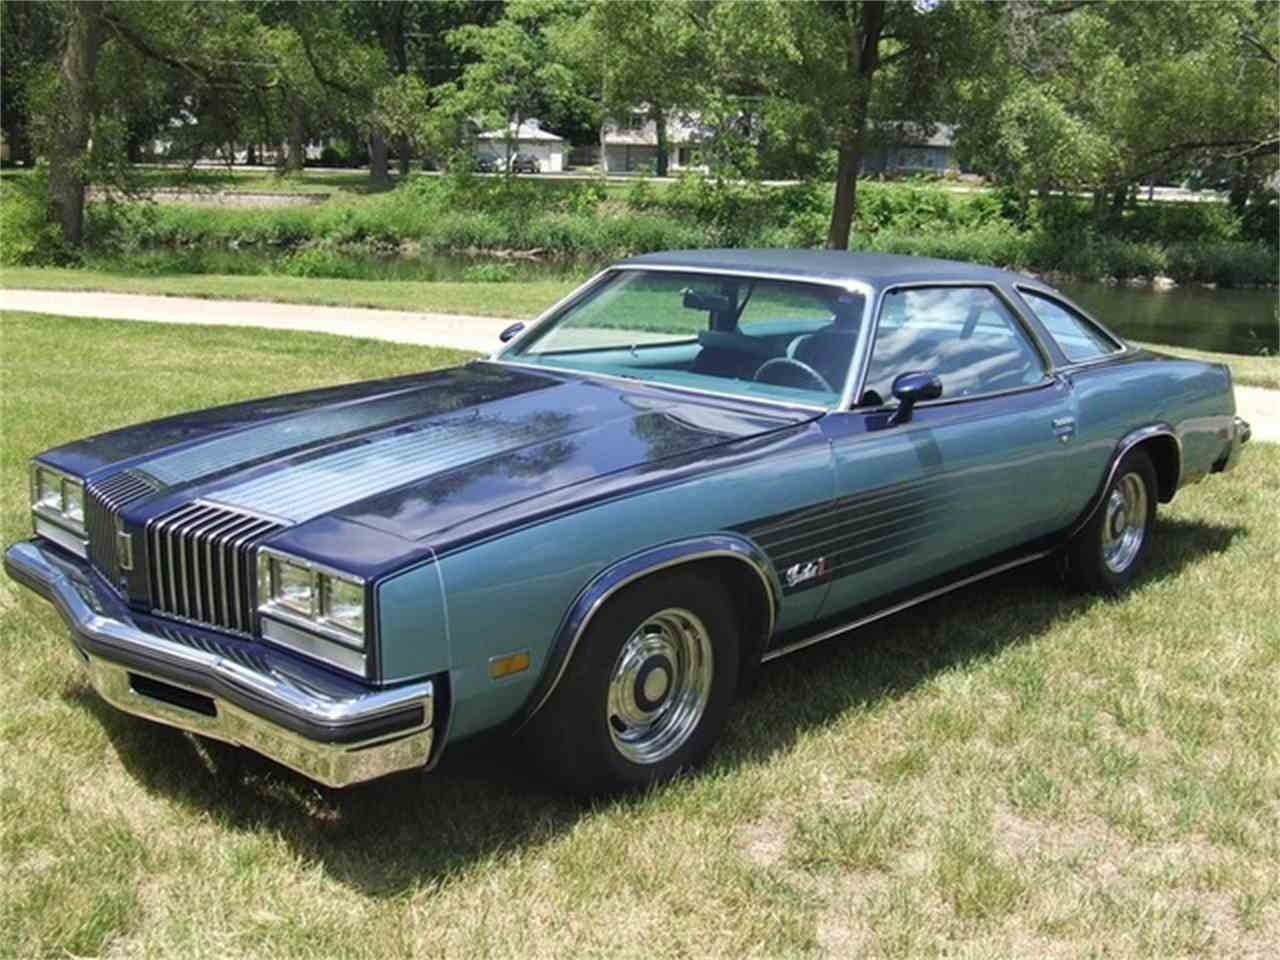 1977 oldsmobile cutlass for sale cc 616707 for 1977 olds cutlass salon for sale